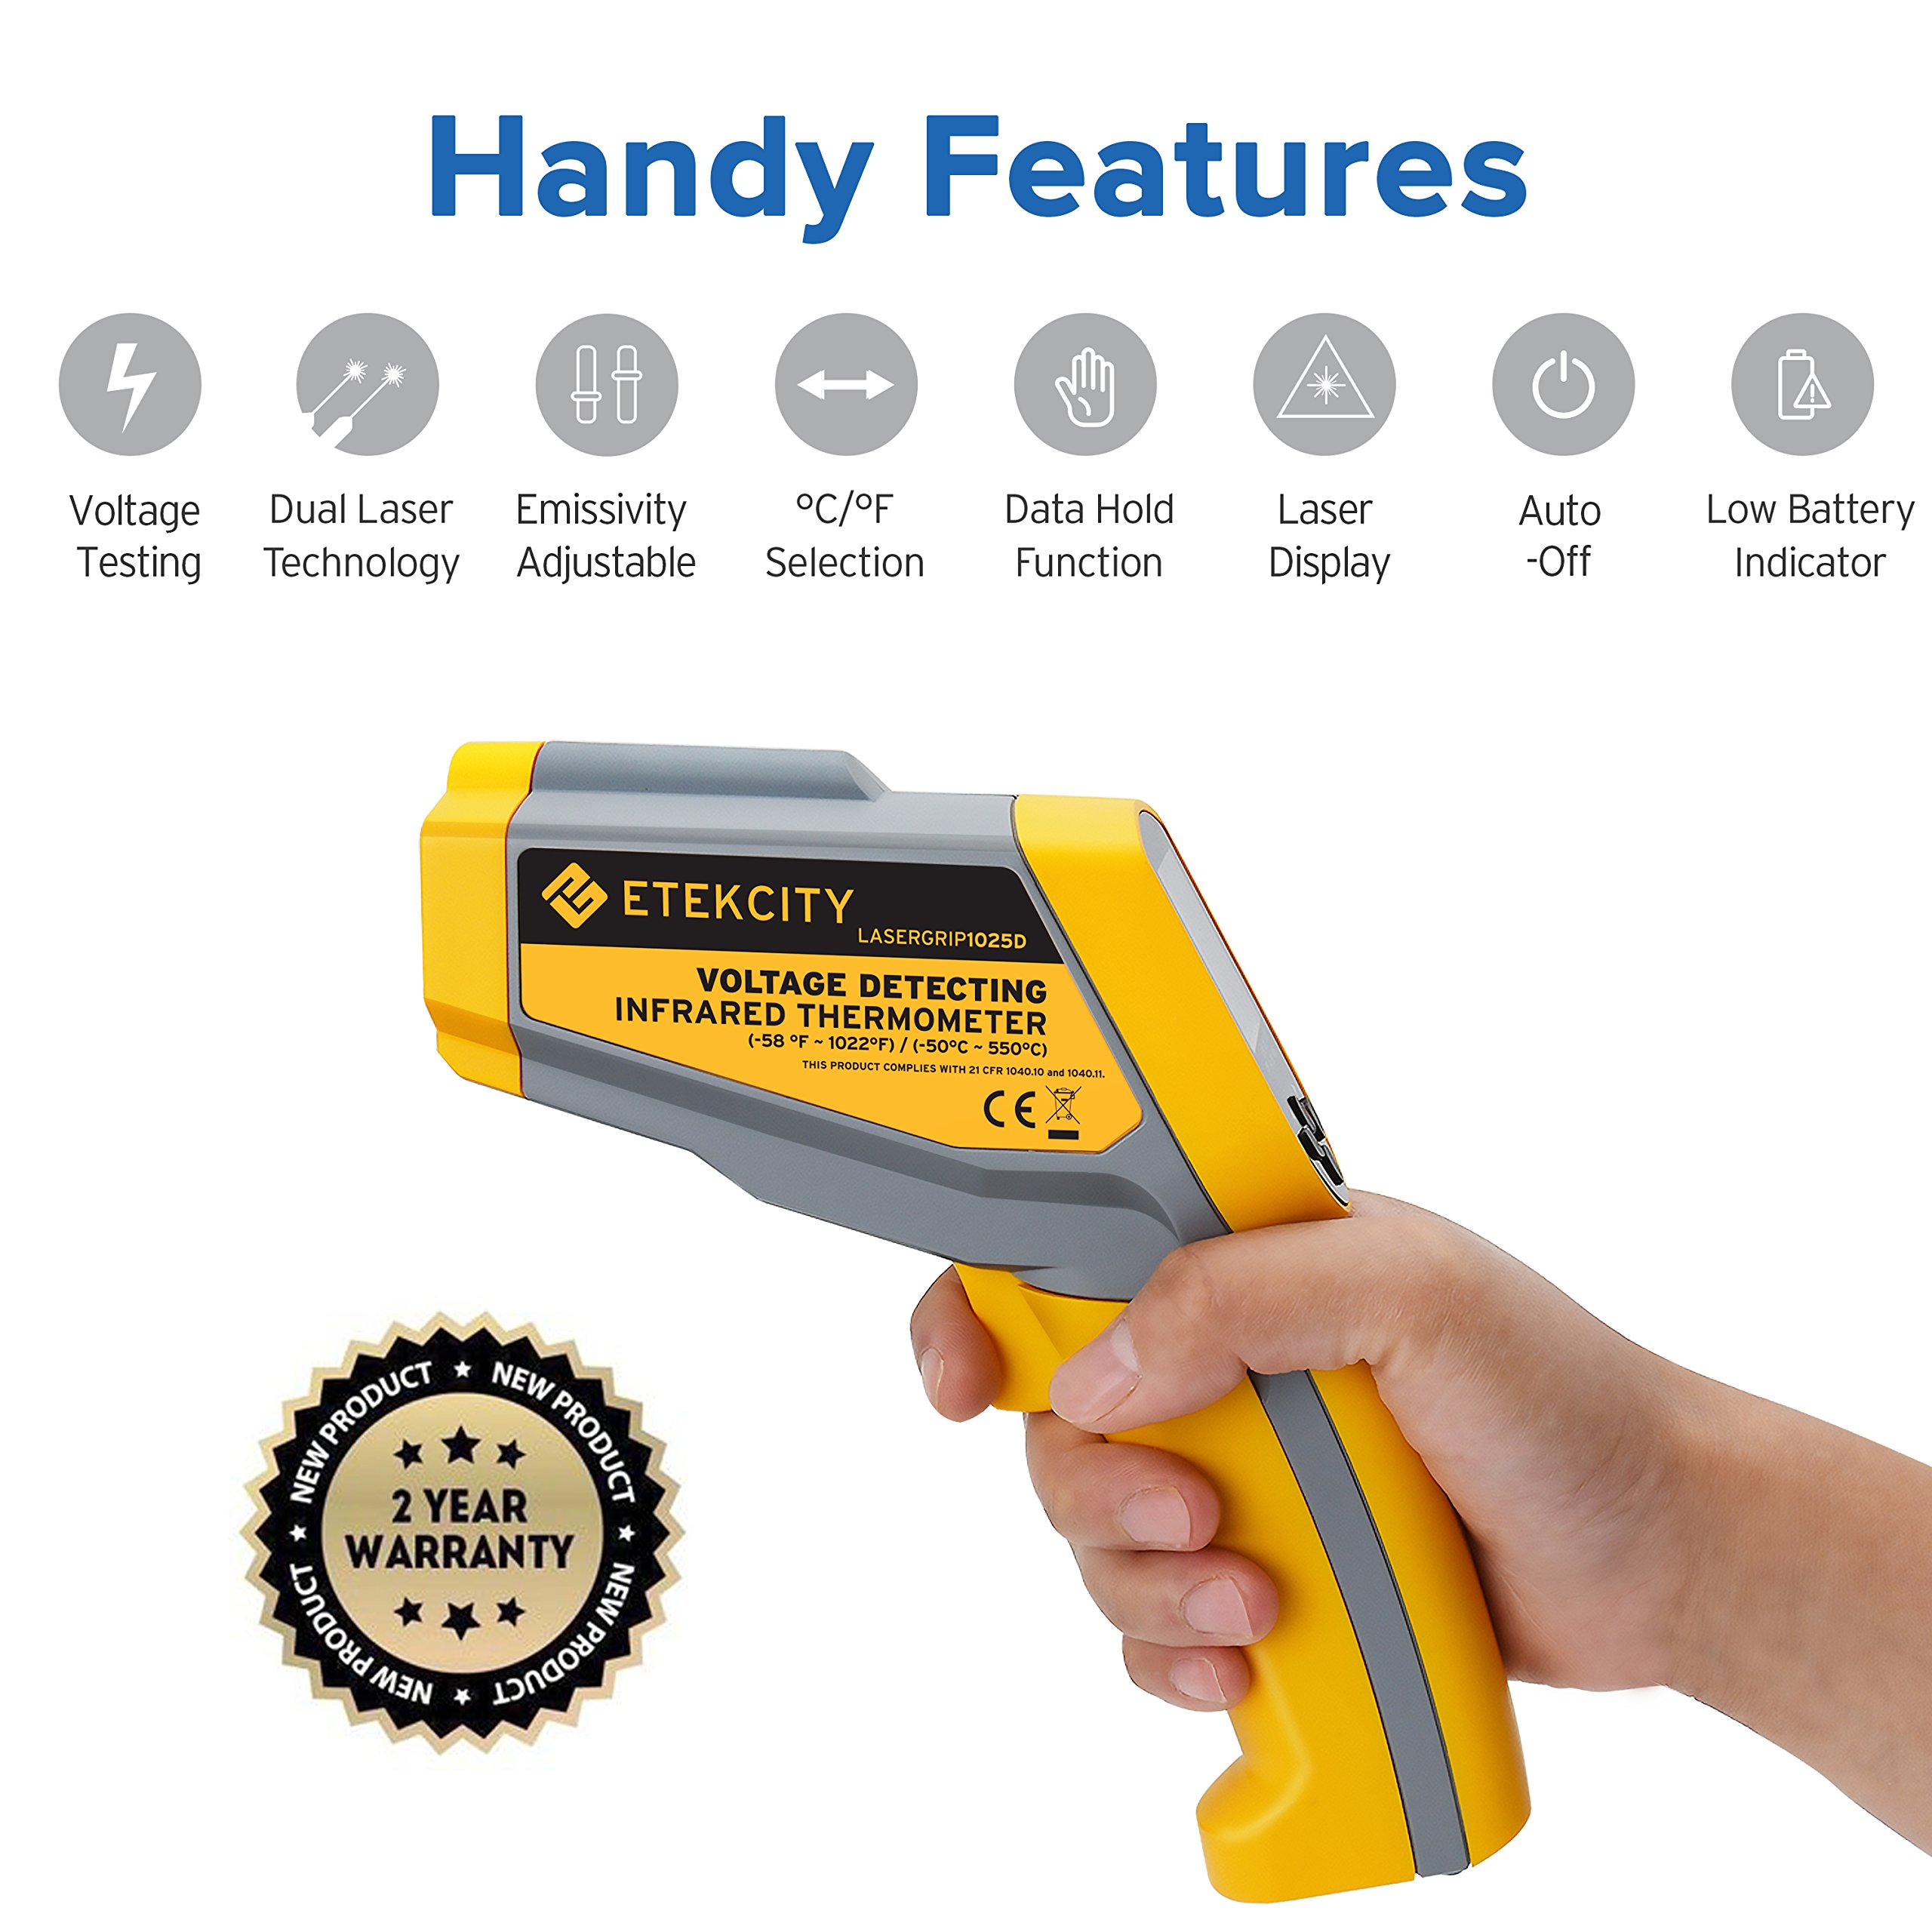 Etekcity Lasergrip1030D Infrared Thermometer Digital Dual Laser Temperature Gun Non-contact with Temperature Filtering -58℉~1022℉ (-50℃ ~ 550℃) by Etekcity (Image #7)